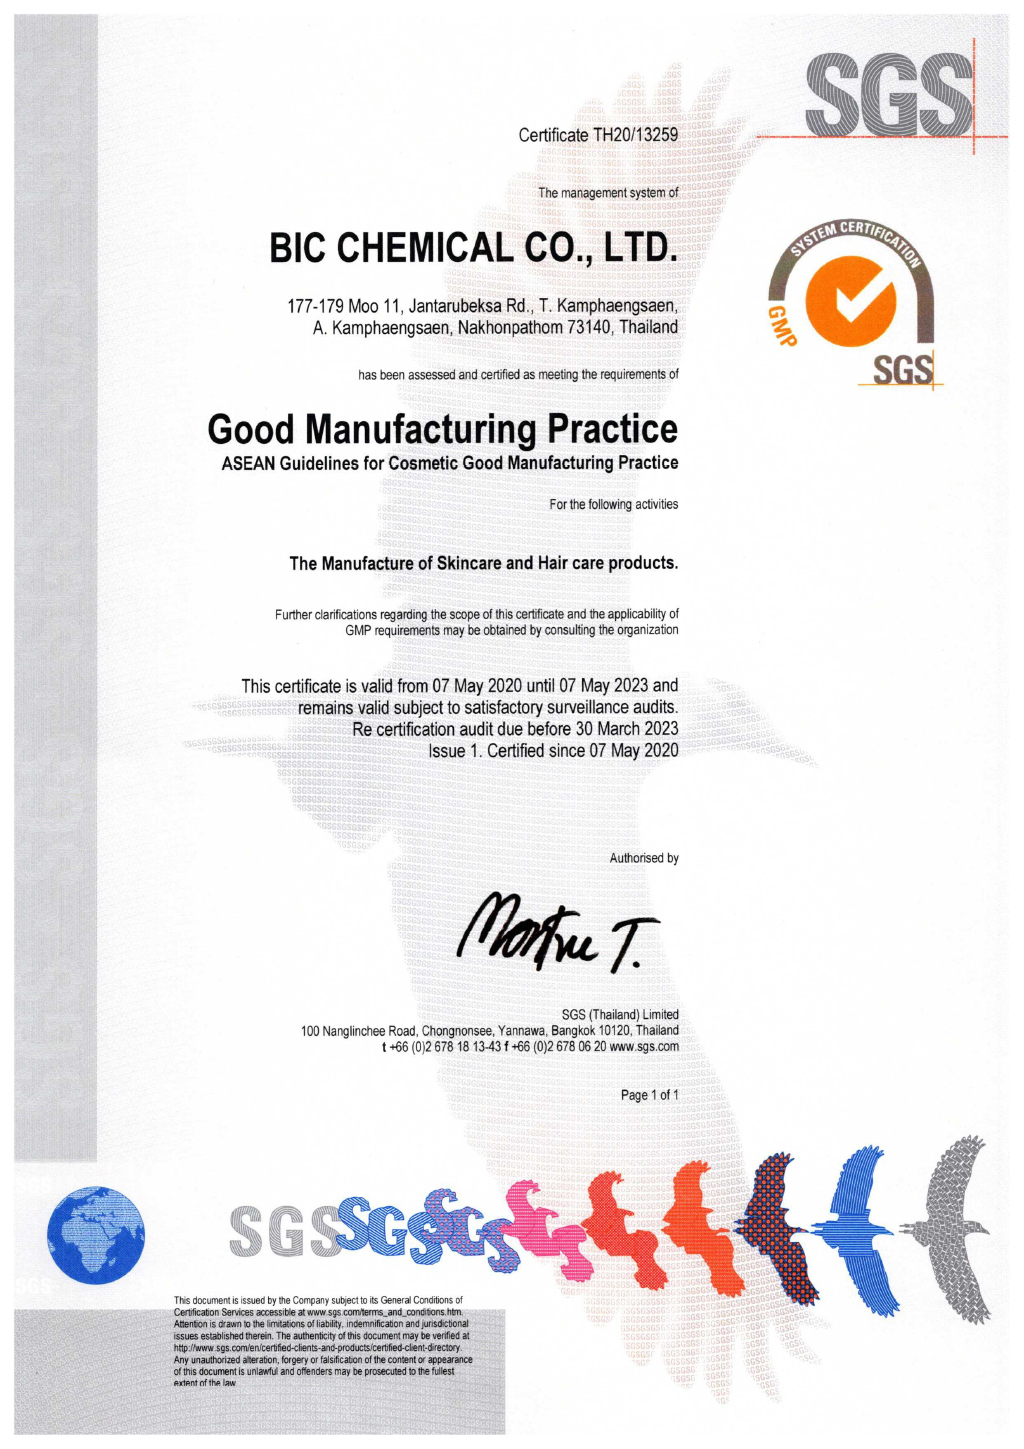 Certificate GMP The Manufacture of Skincare and Hair care products.